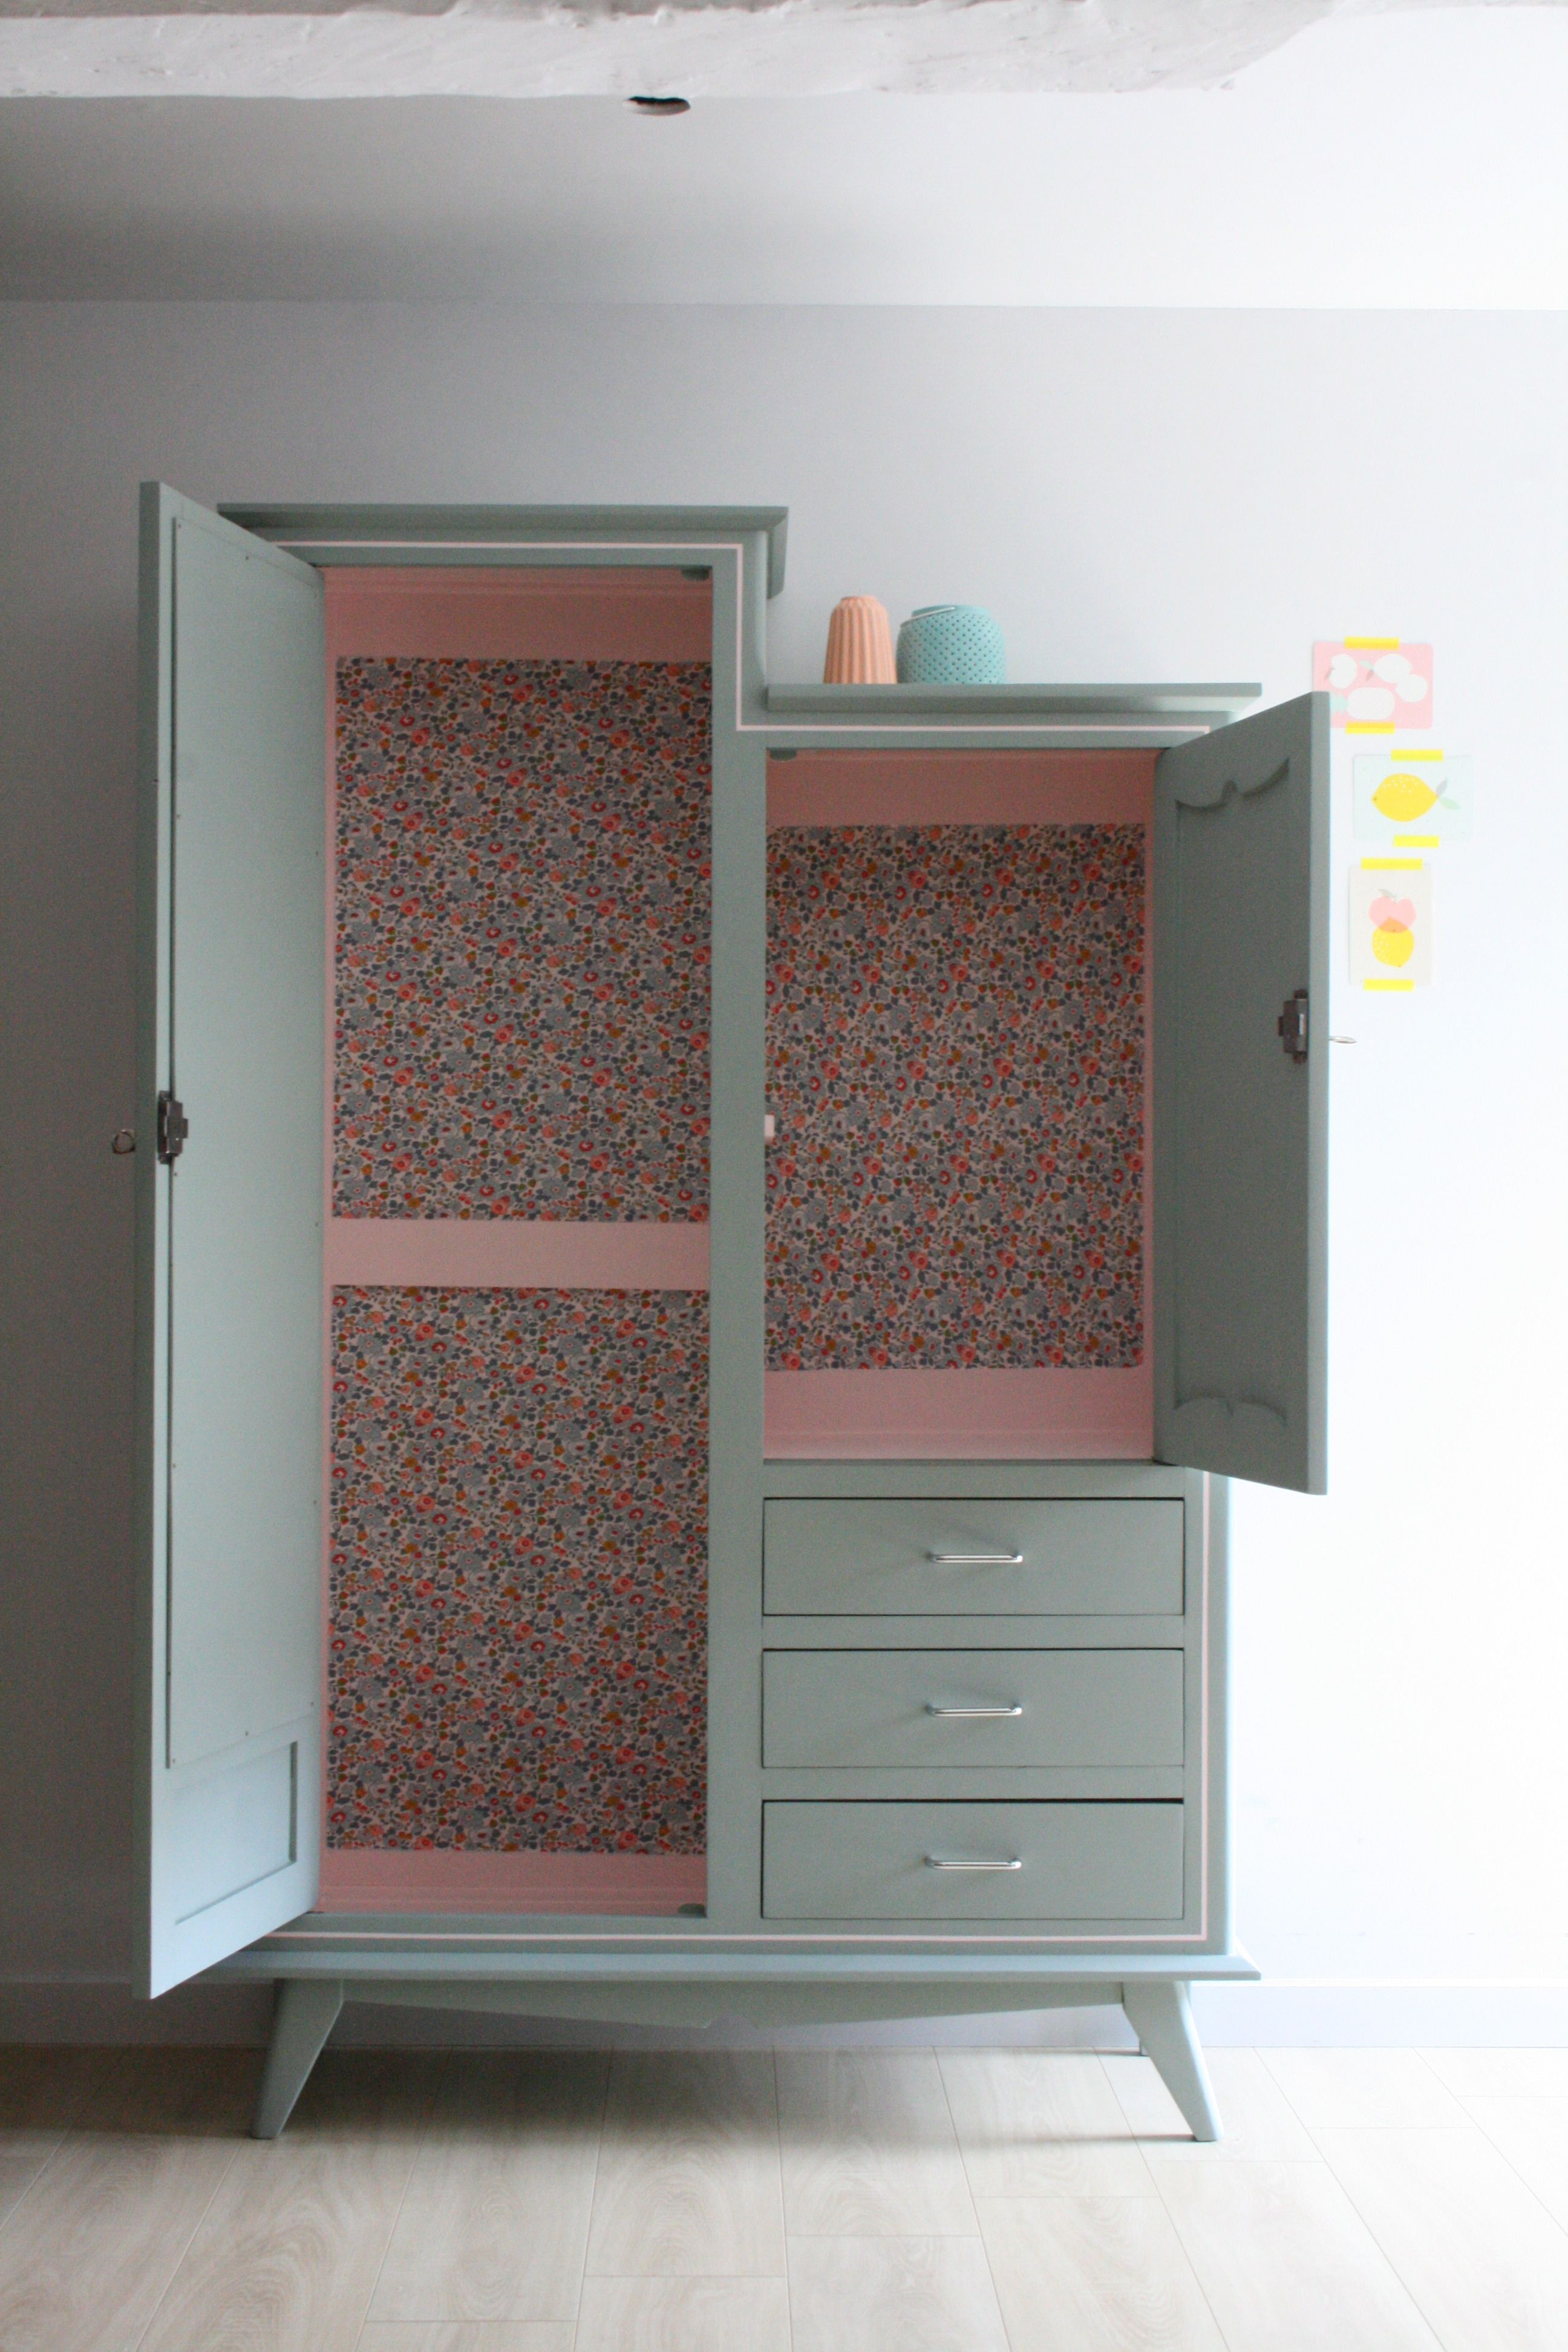 armoire vintage r nov e et relook e par les jolis meubles interior pinterest relooker le. Black Bedroom Furniture Sets. Home Design Ideas